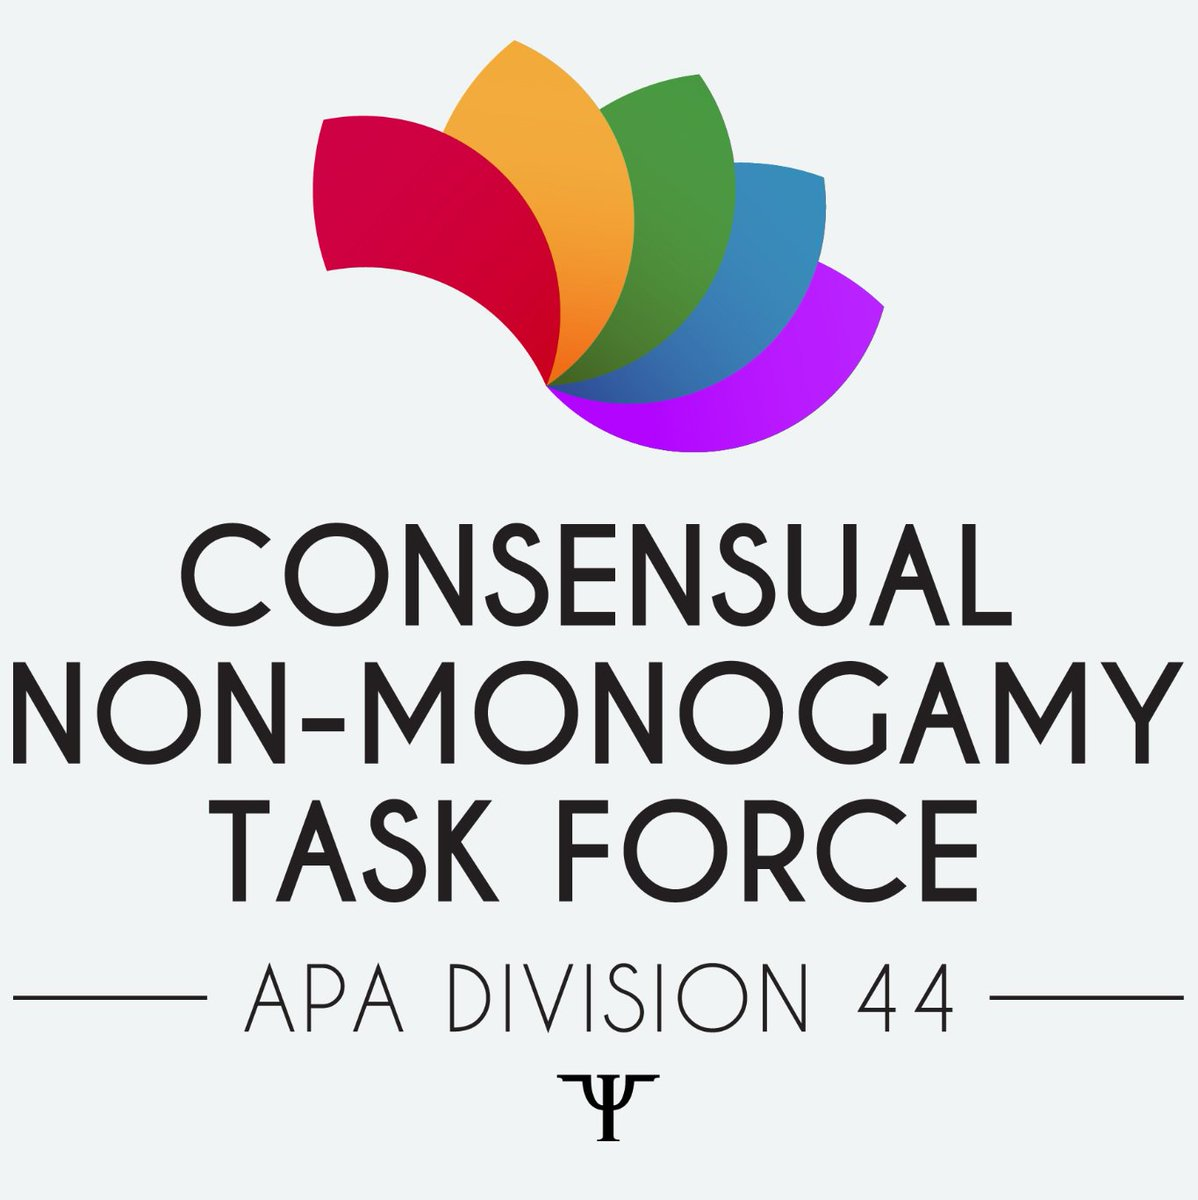 Psychologists form task force to promote polyamory education, research, & training. http://ow.ly/U9yK50v7cLg  . . . #polyamorous #poly #loveislove #love #polylife #polypride #relationships #nonmonogamy #polylove #ethicalnonmonogamy  #polyamory #polyamorylove #polyamorypride